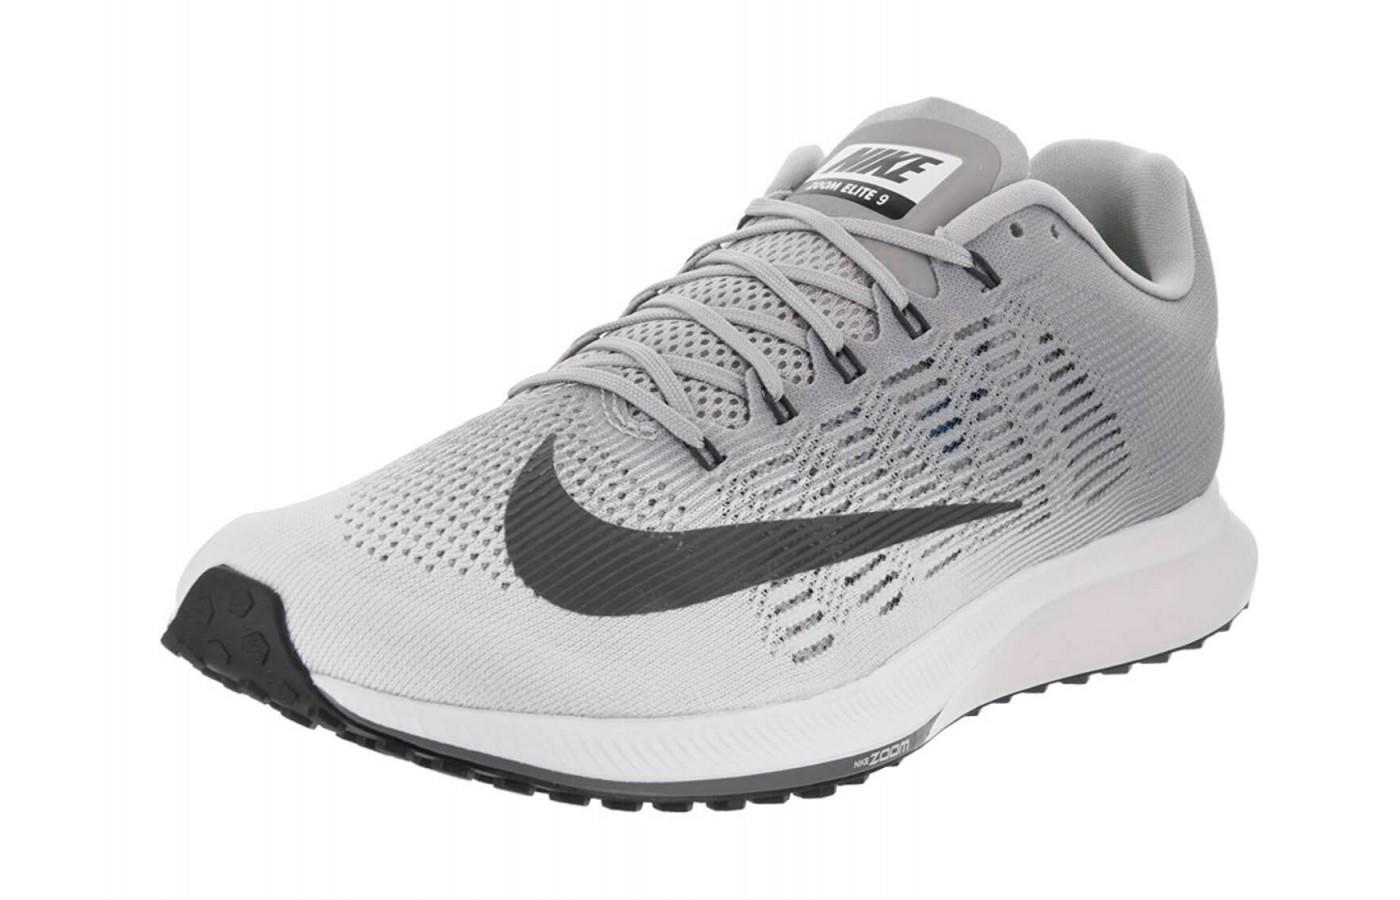 ... The Nike Air Zoom Elite 9 features a Flymesh technology upper.